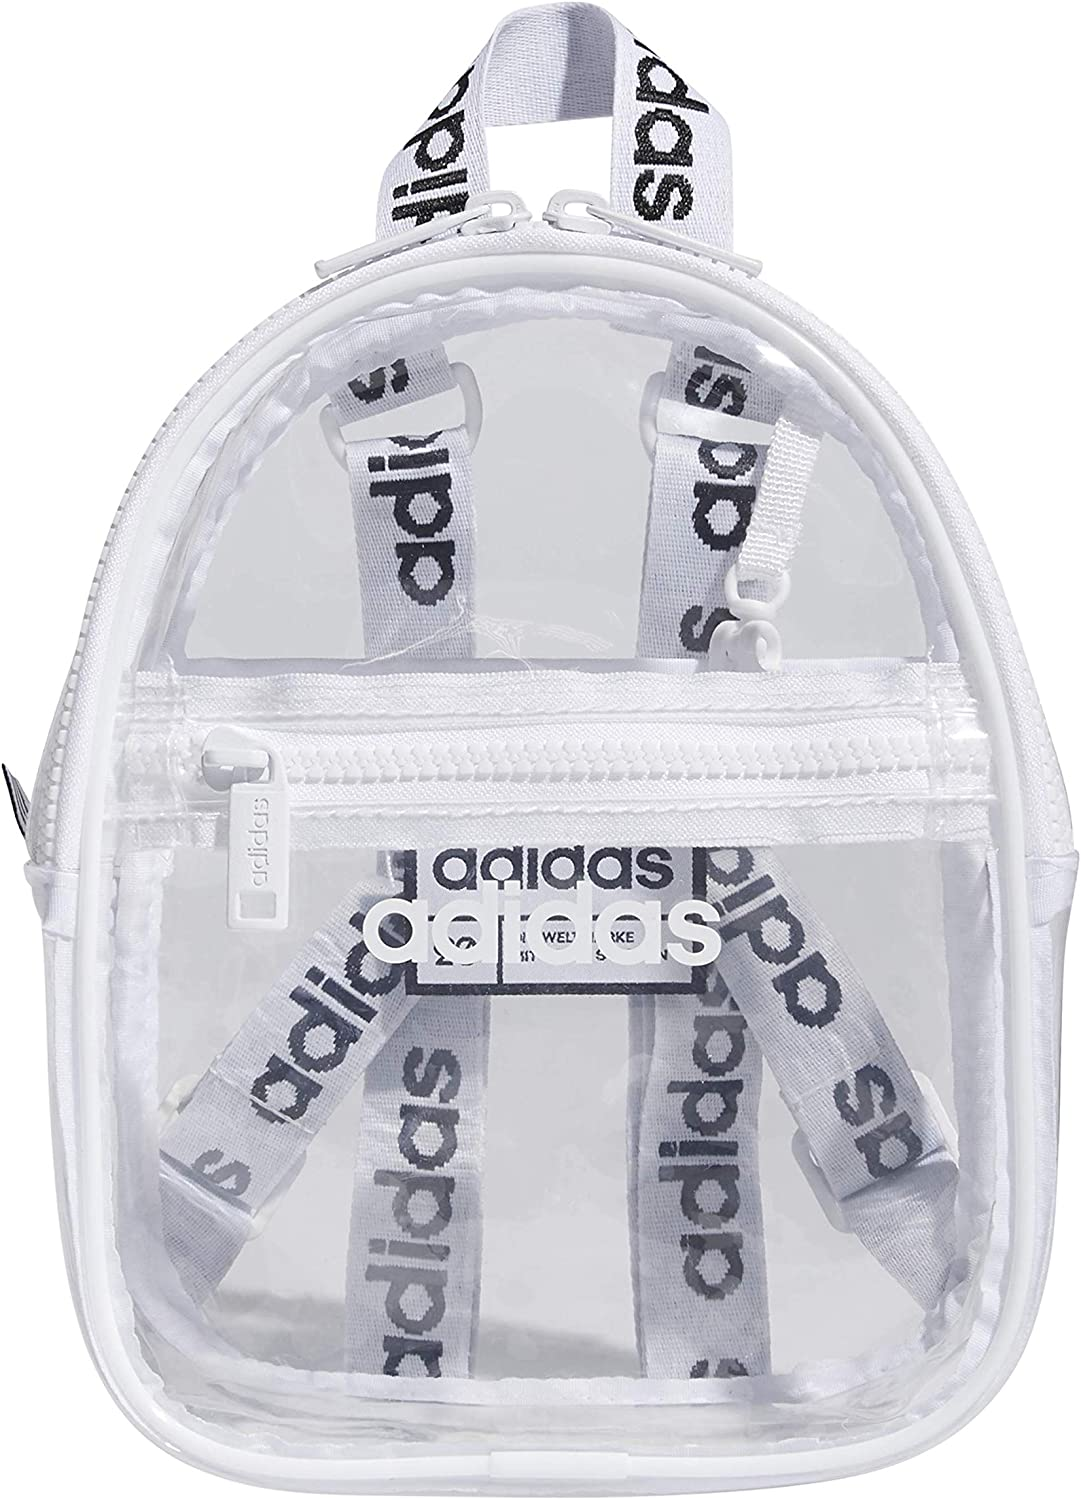 Brand new adidas Clear Max 61% OFF 2 Backpack Mini